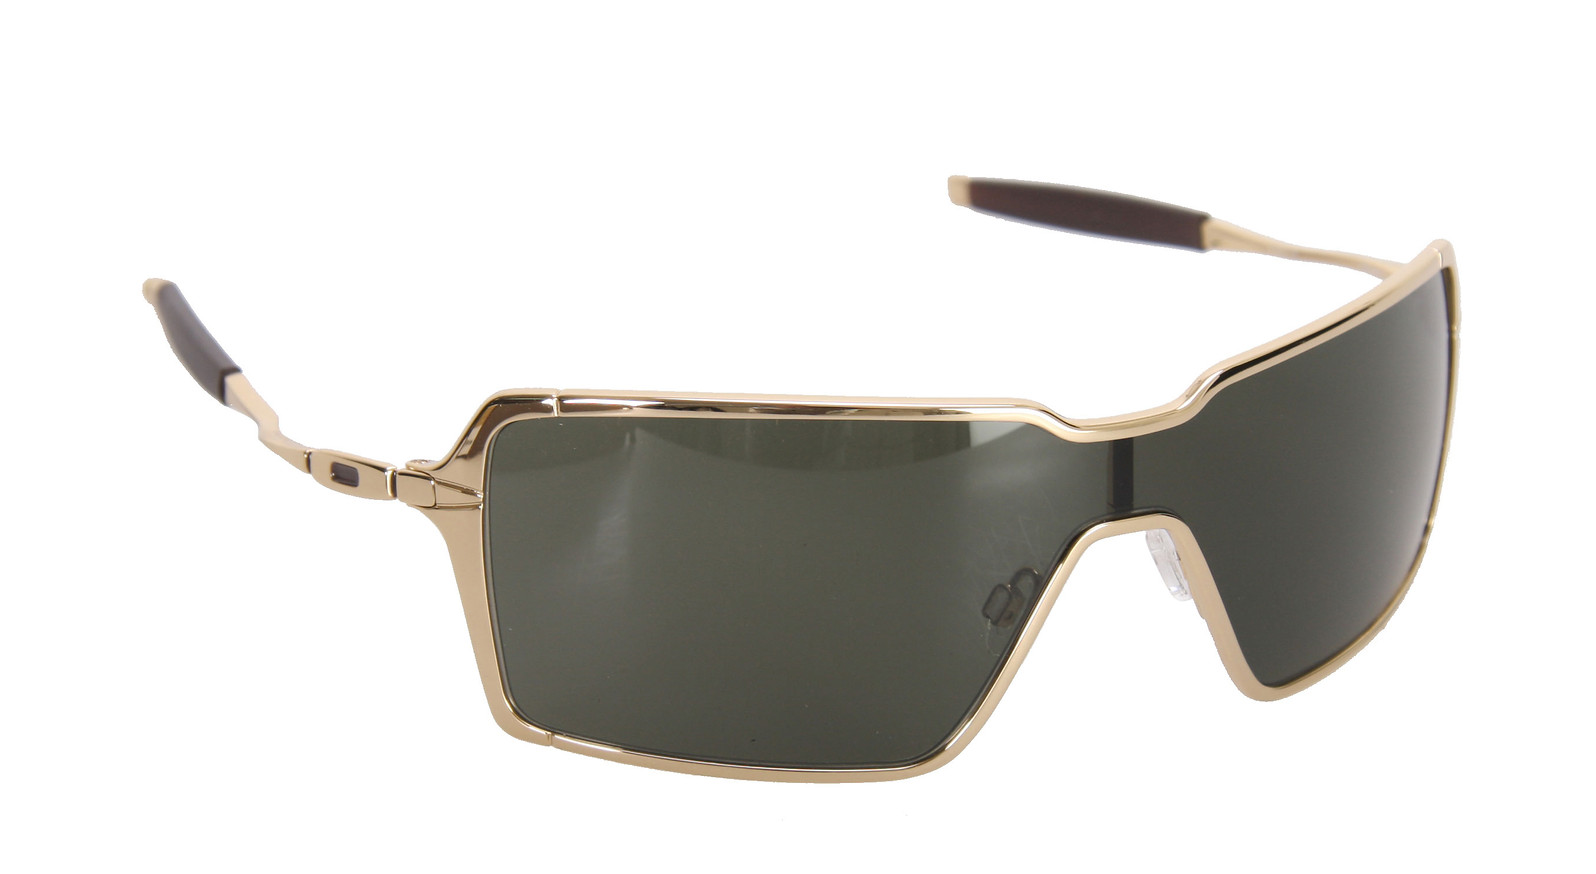 Oakley Probation Sunglasses Polished Gold/Dark Grey Lens  oakley-probation-sngls-polishedglddrkgry-10.jpg